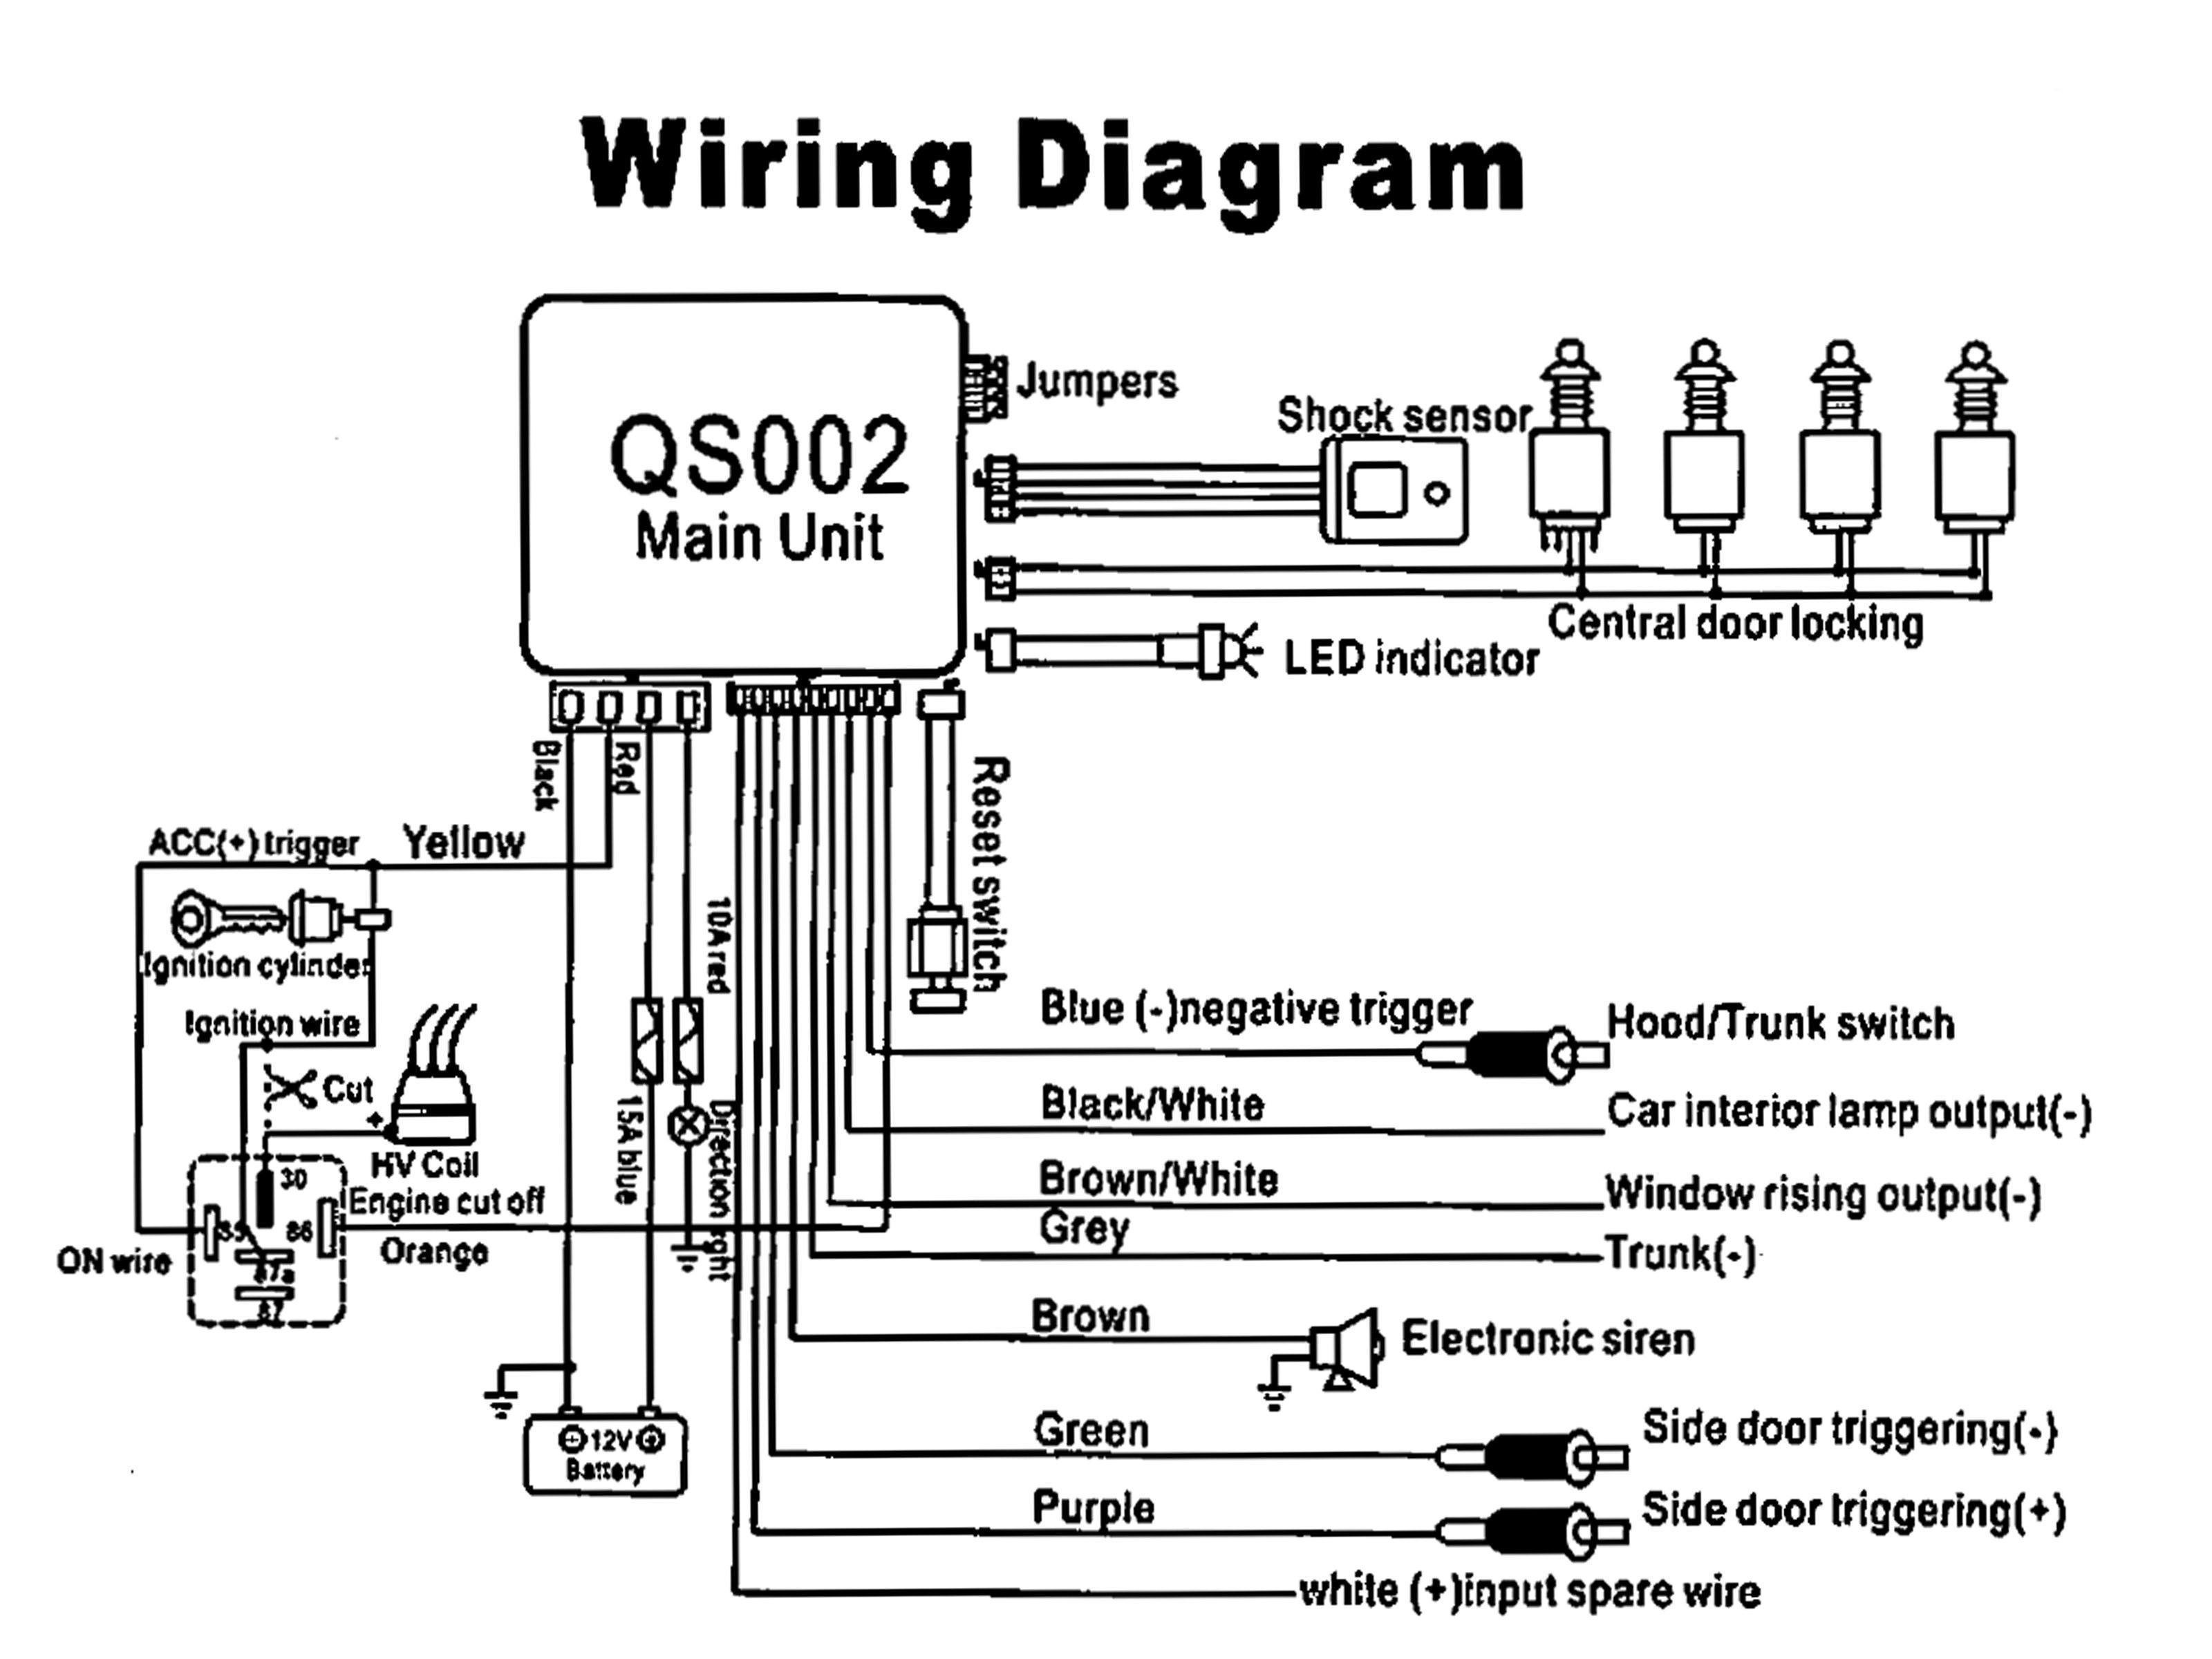 Hornet Car Alarm Wiring Diagram Best Car Alarm Wire Diagram Gallery Everything You Need to Know Of Hornet Car Alarm Wiring Diagram